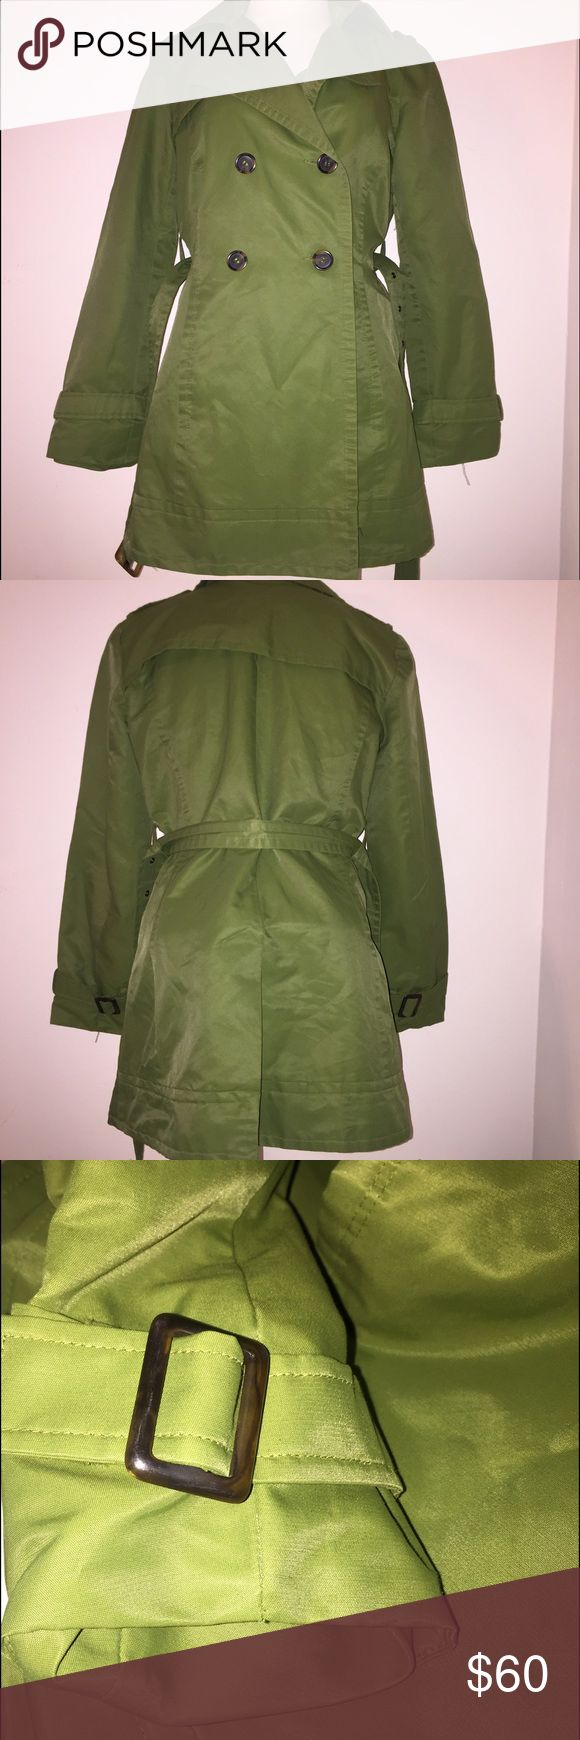 Zara Military Green Trench Coat Zara Military Green Trench Coat. The flash makes the color look a lot different, it's close to army green... this is basically new I'm a XS or S, this was always too big. Make an offer Zara Jackets & Coats Trench Coats